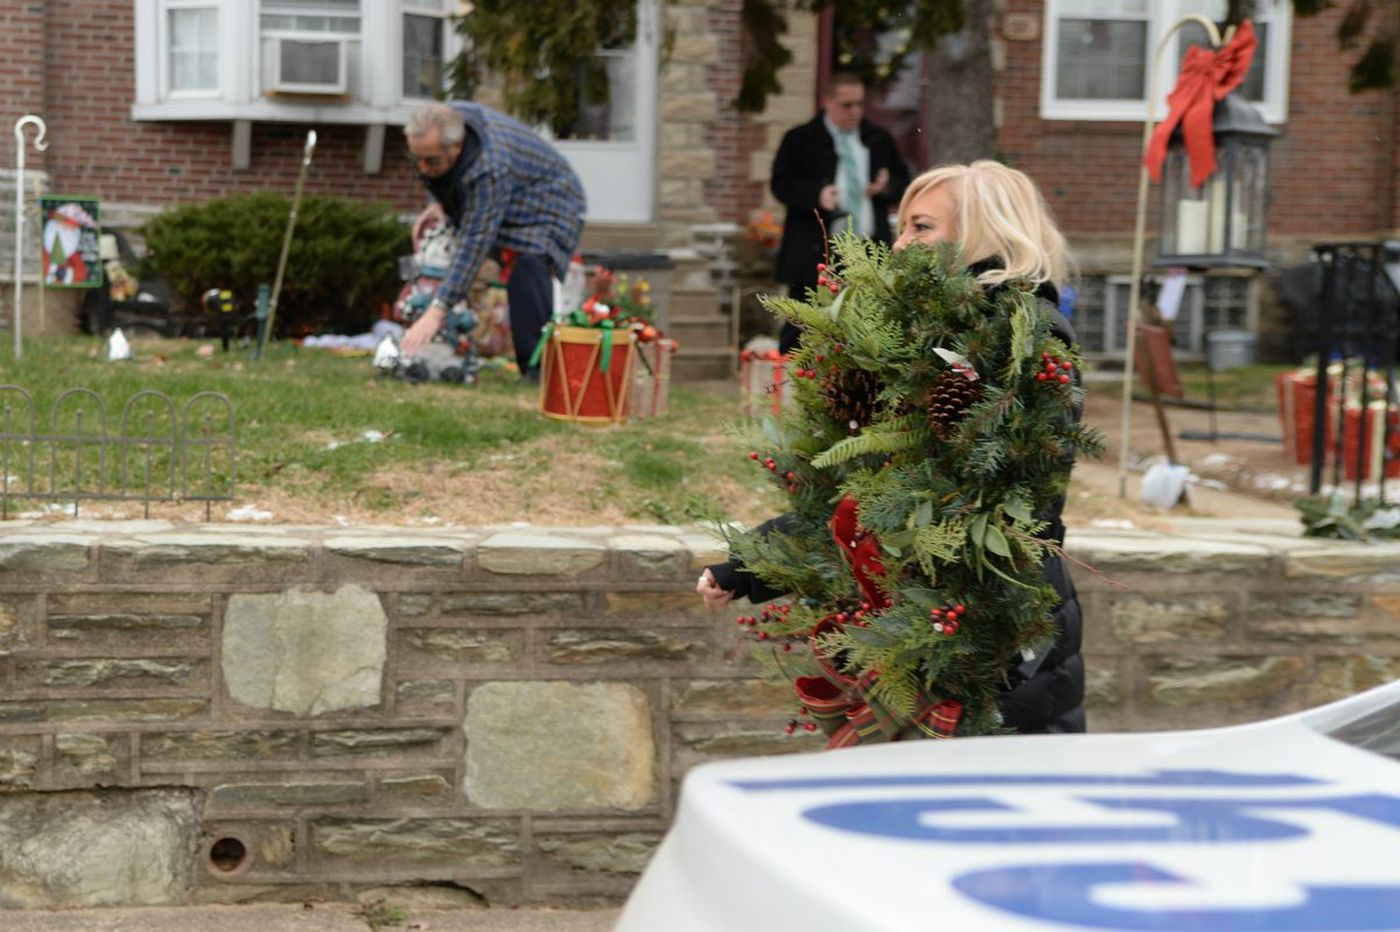 Cops: Mayfair woman stole hundreds of neighbors' holiday decorations - wreaths, lights, lawn ornaments